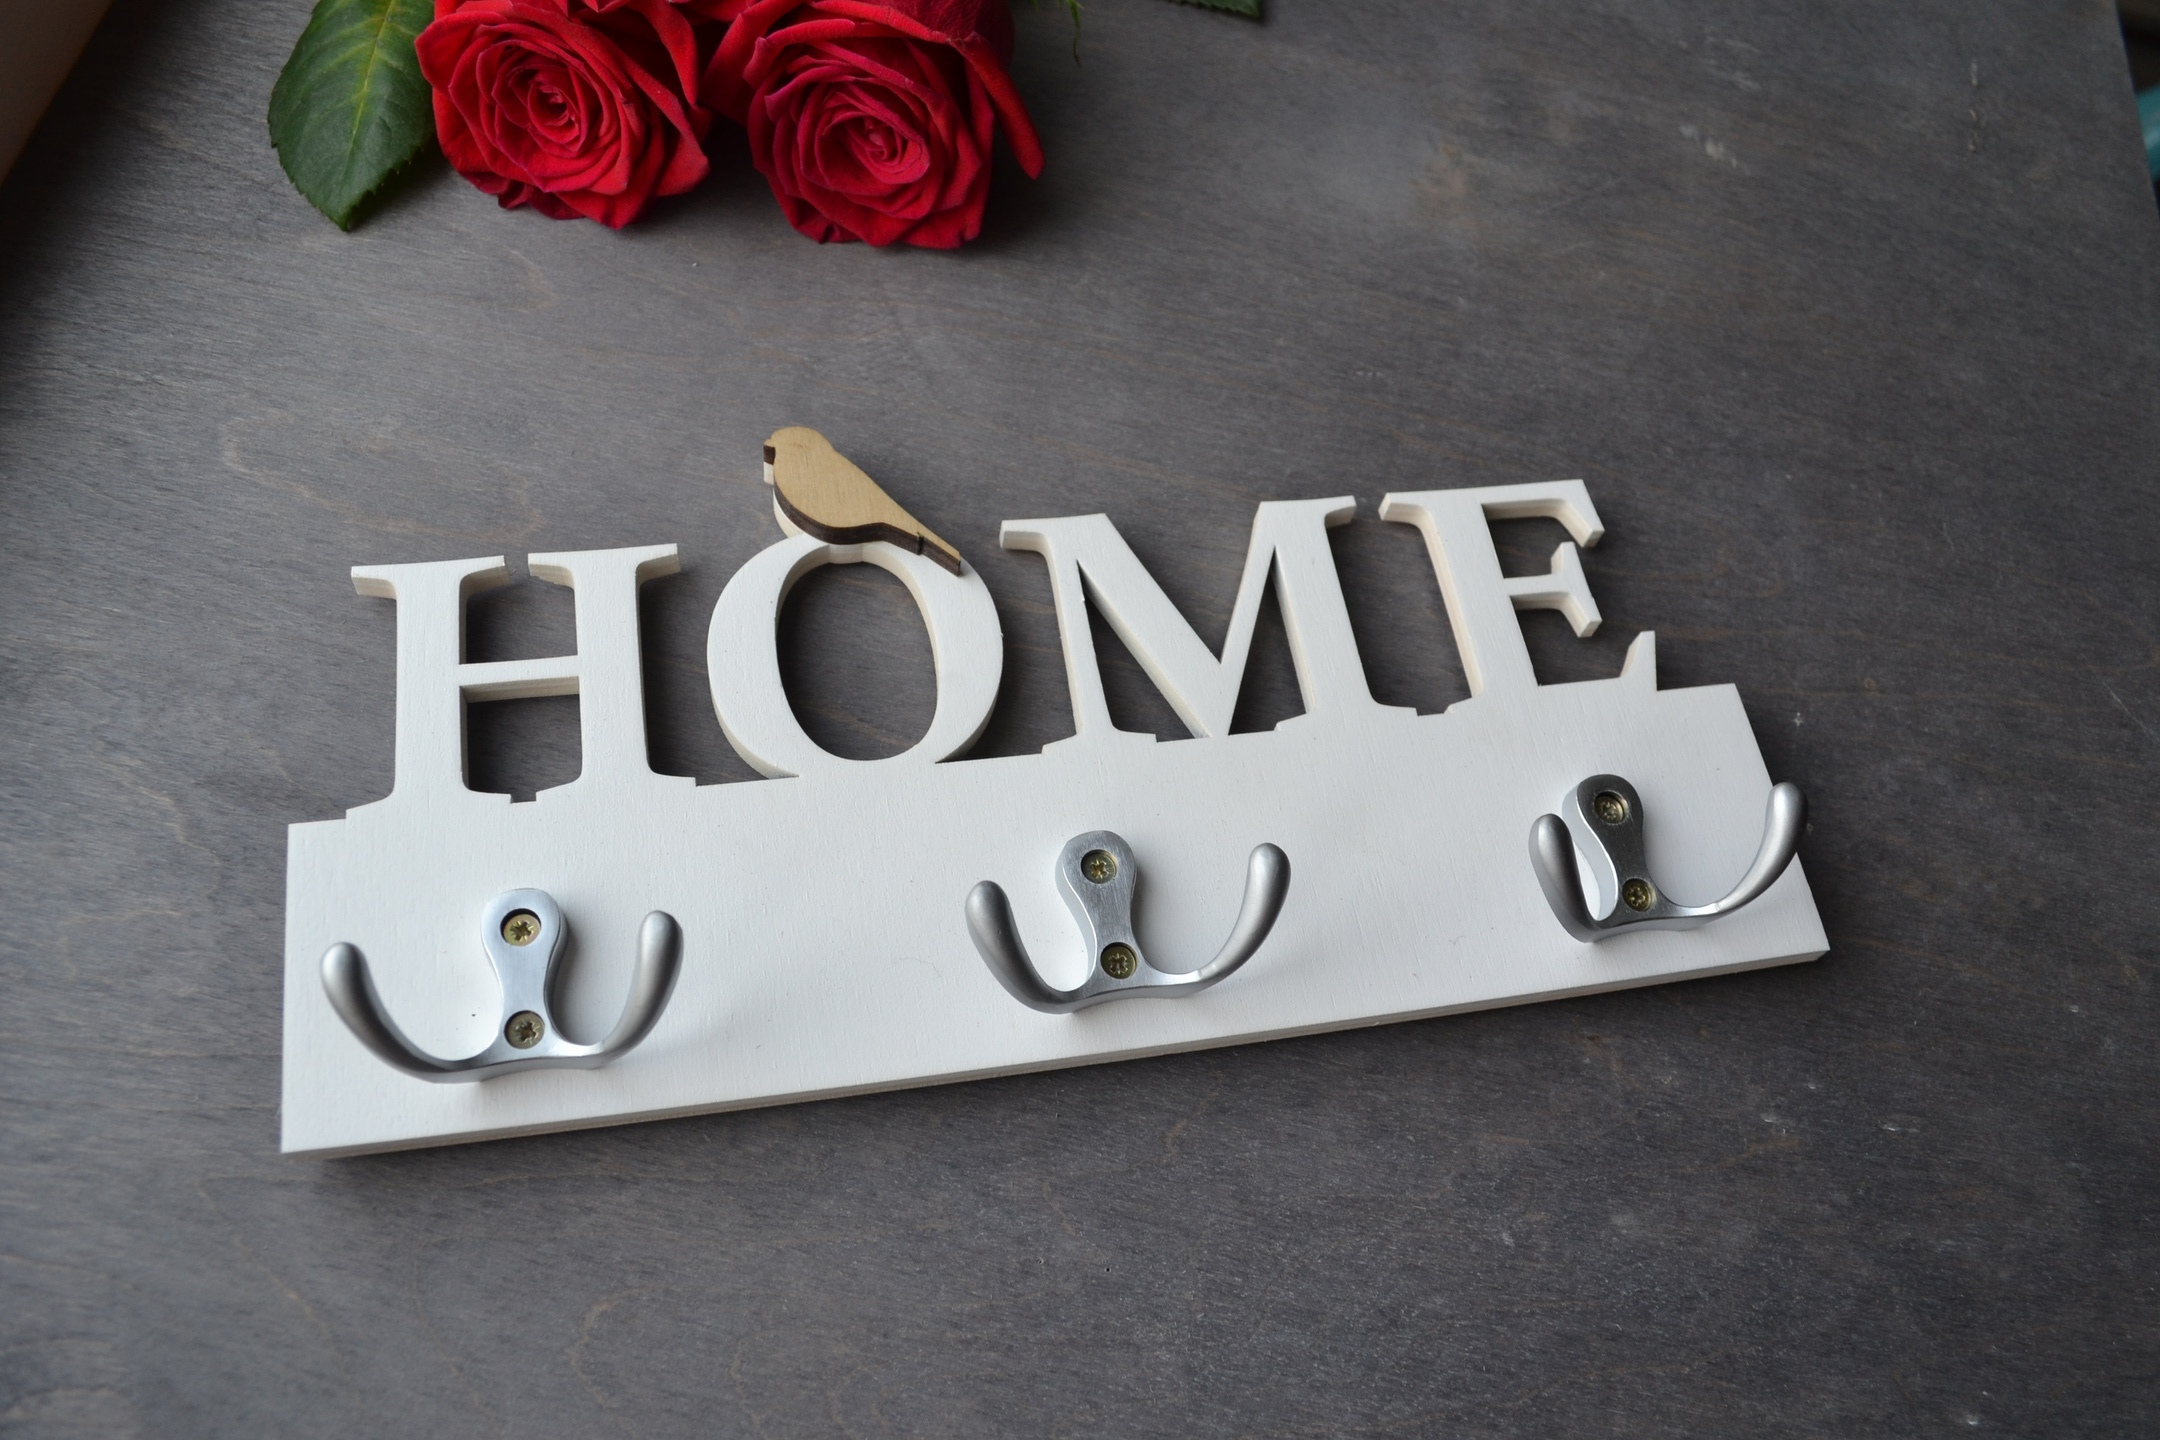 Laser Cut Home Wall Hanger Wall Hanging Decor 6mm Free Vector